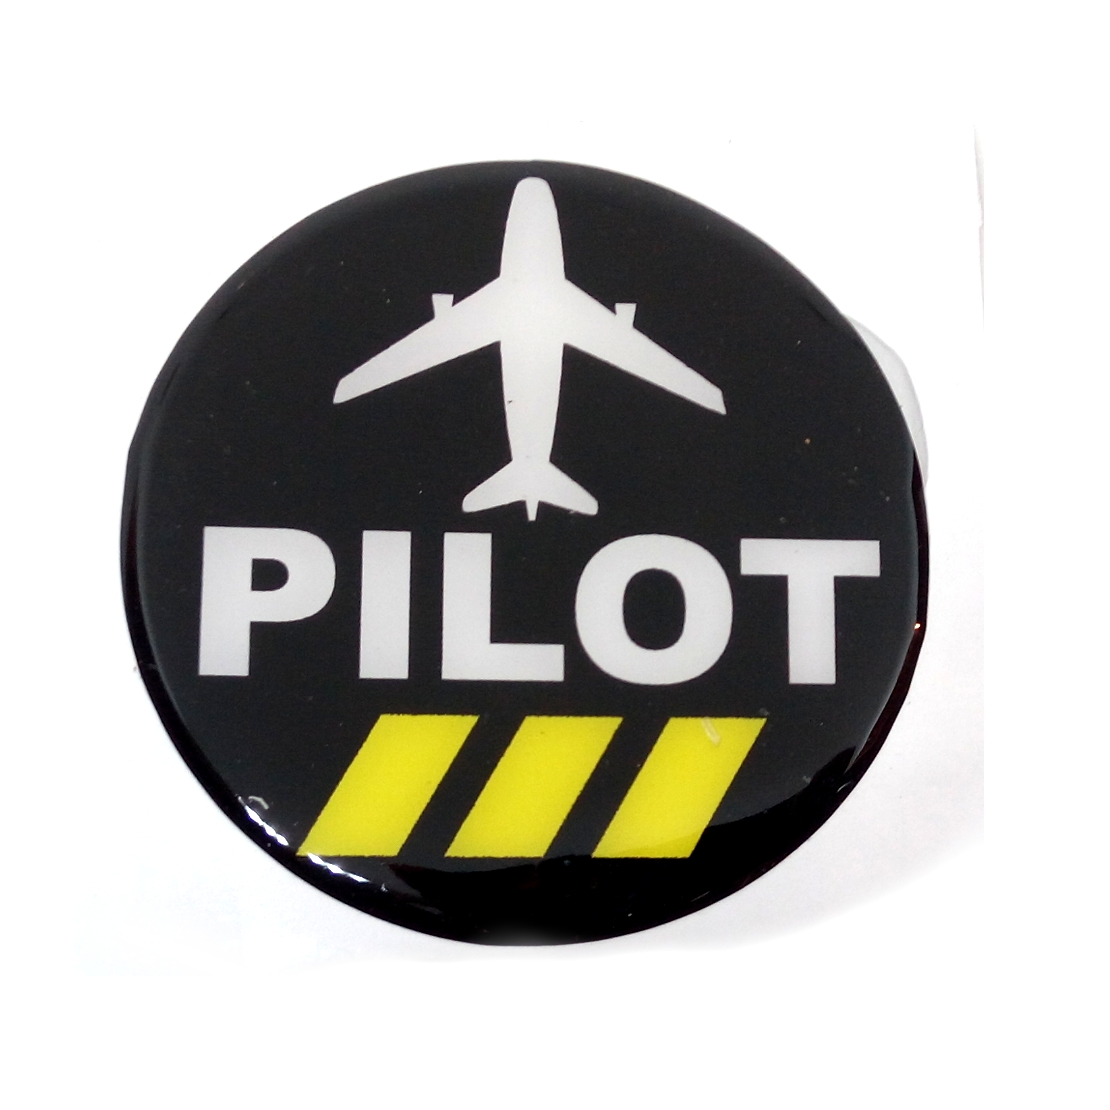 Pilot black 3 round 3 5 inch 3d flexible scratch proof car sticker for  pilots and aviation people (set of 2)